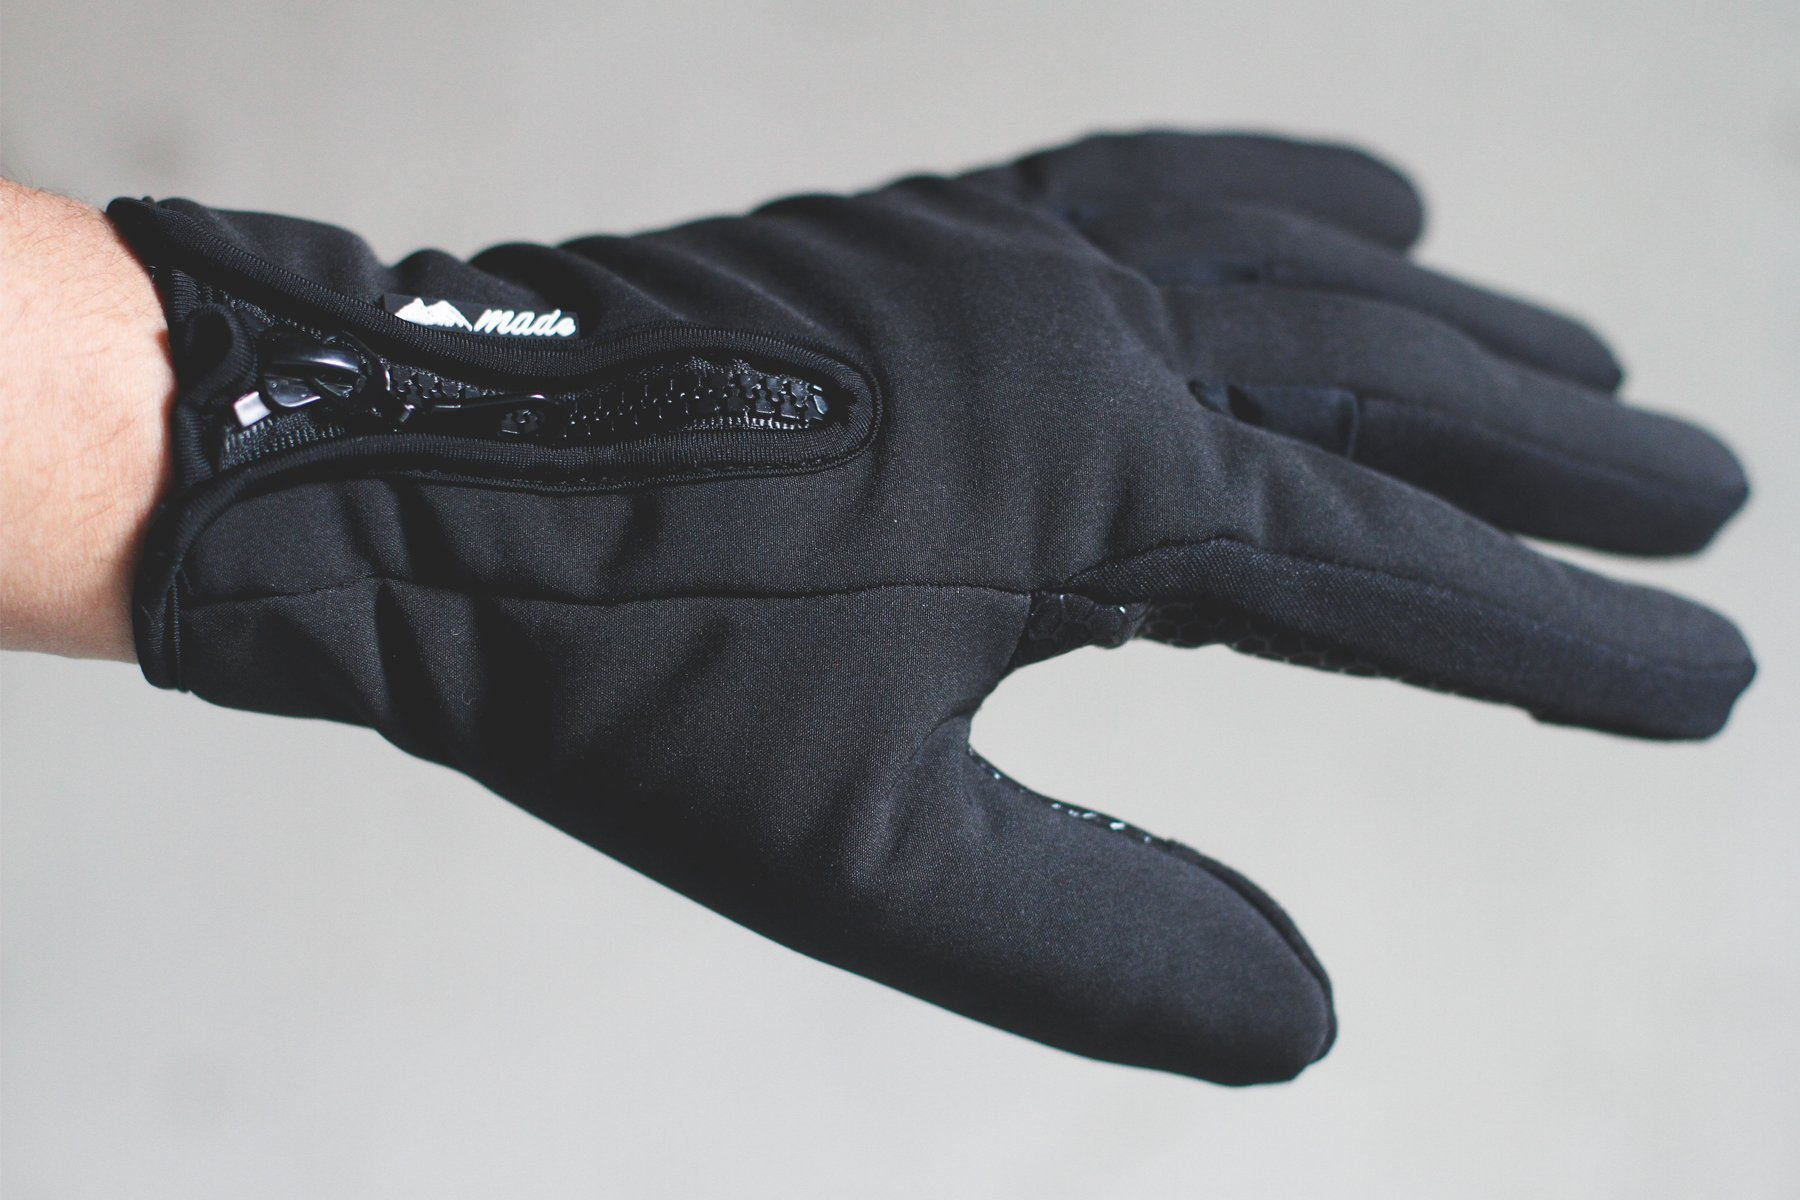 Mountain Made Cold Weather Genesis Gloves for Men & Women, Medium, Black by Mountain Made (Image #6)